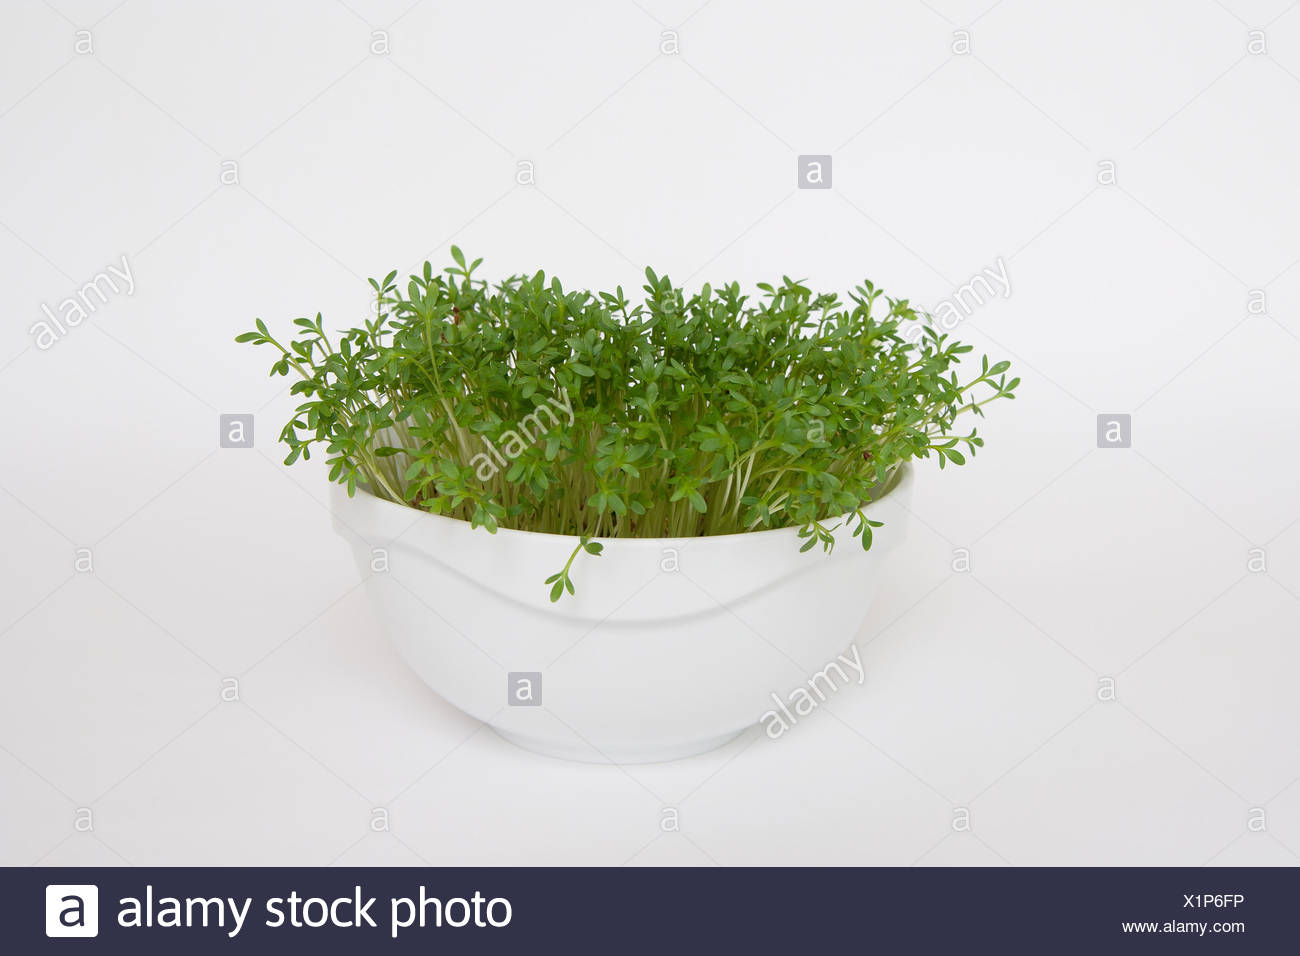 The Spice Gardens Stock Photos & The Spice Gardens Stock Images - Alamy